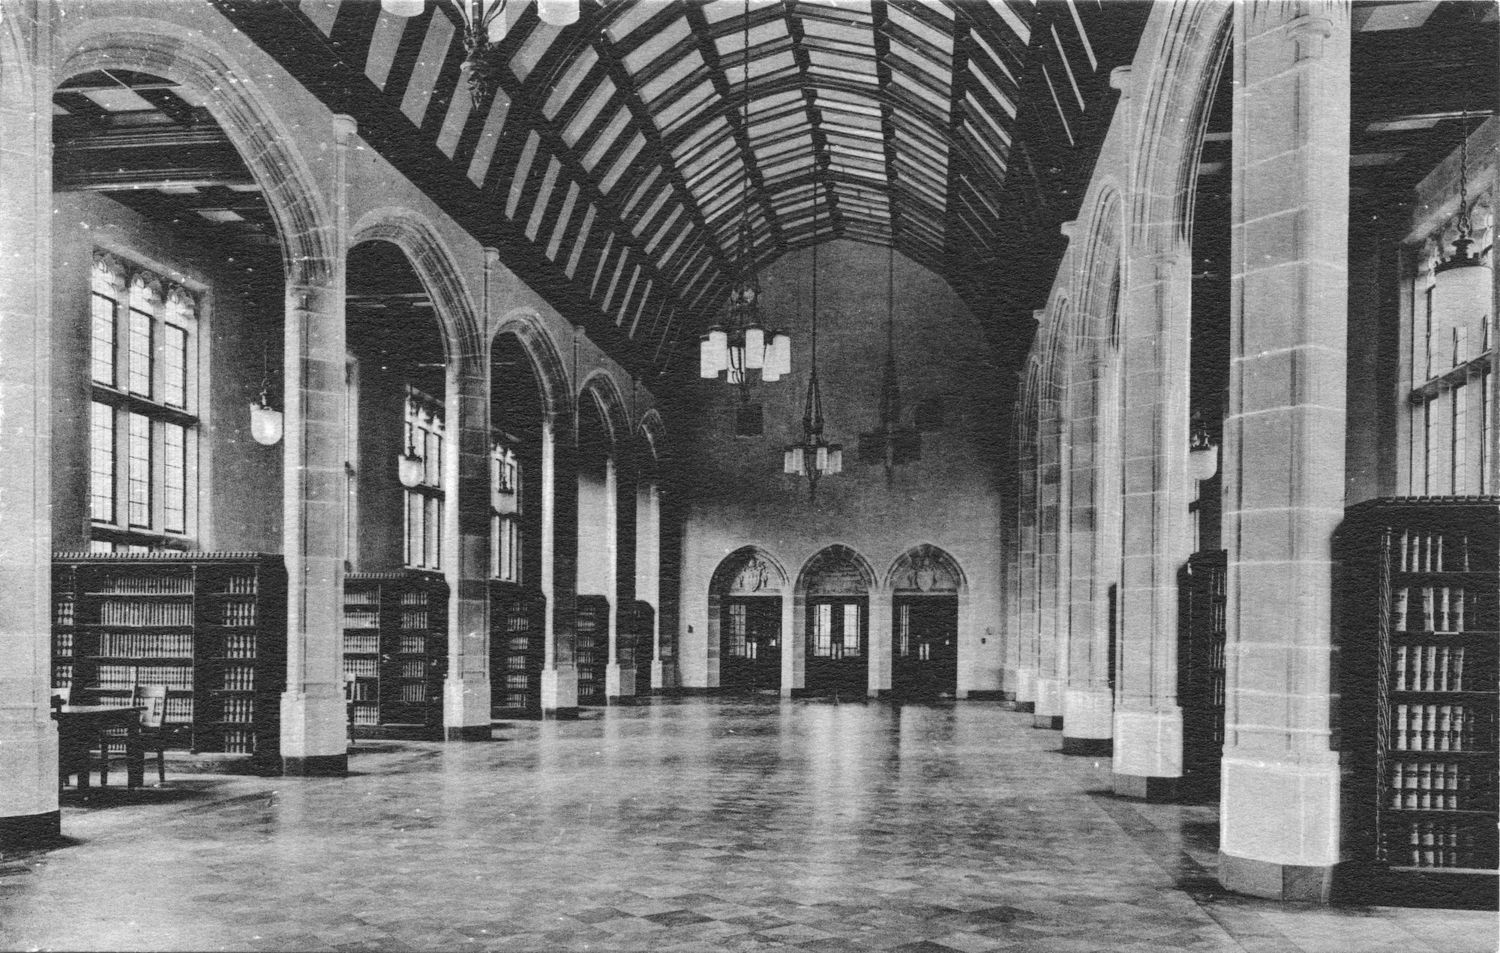 Inside the law library interior